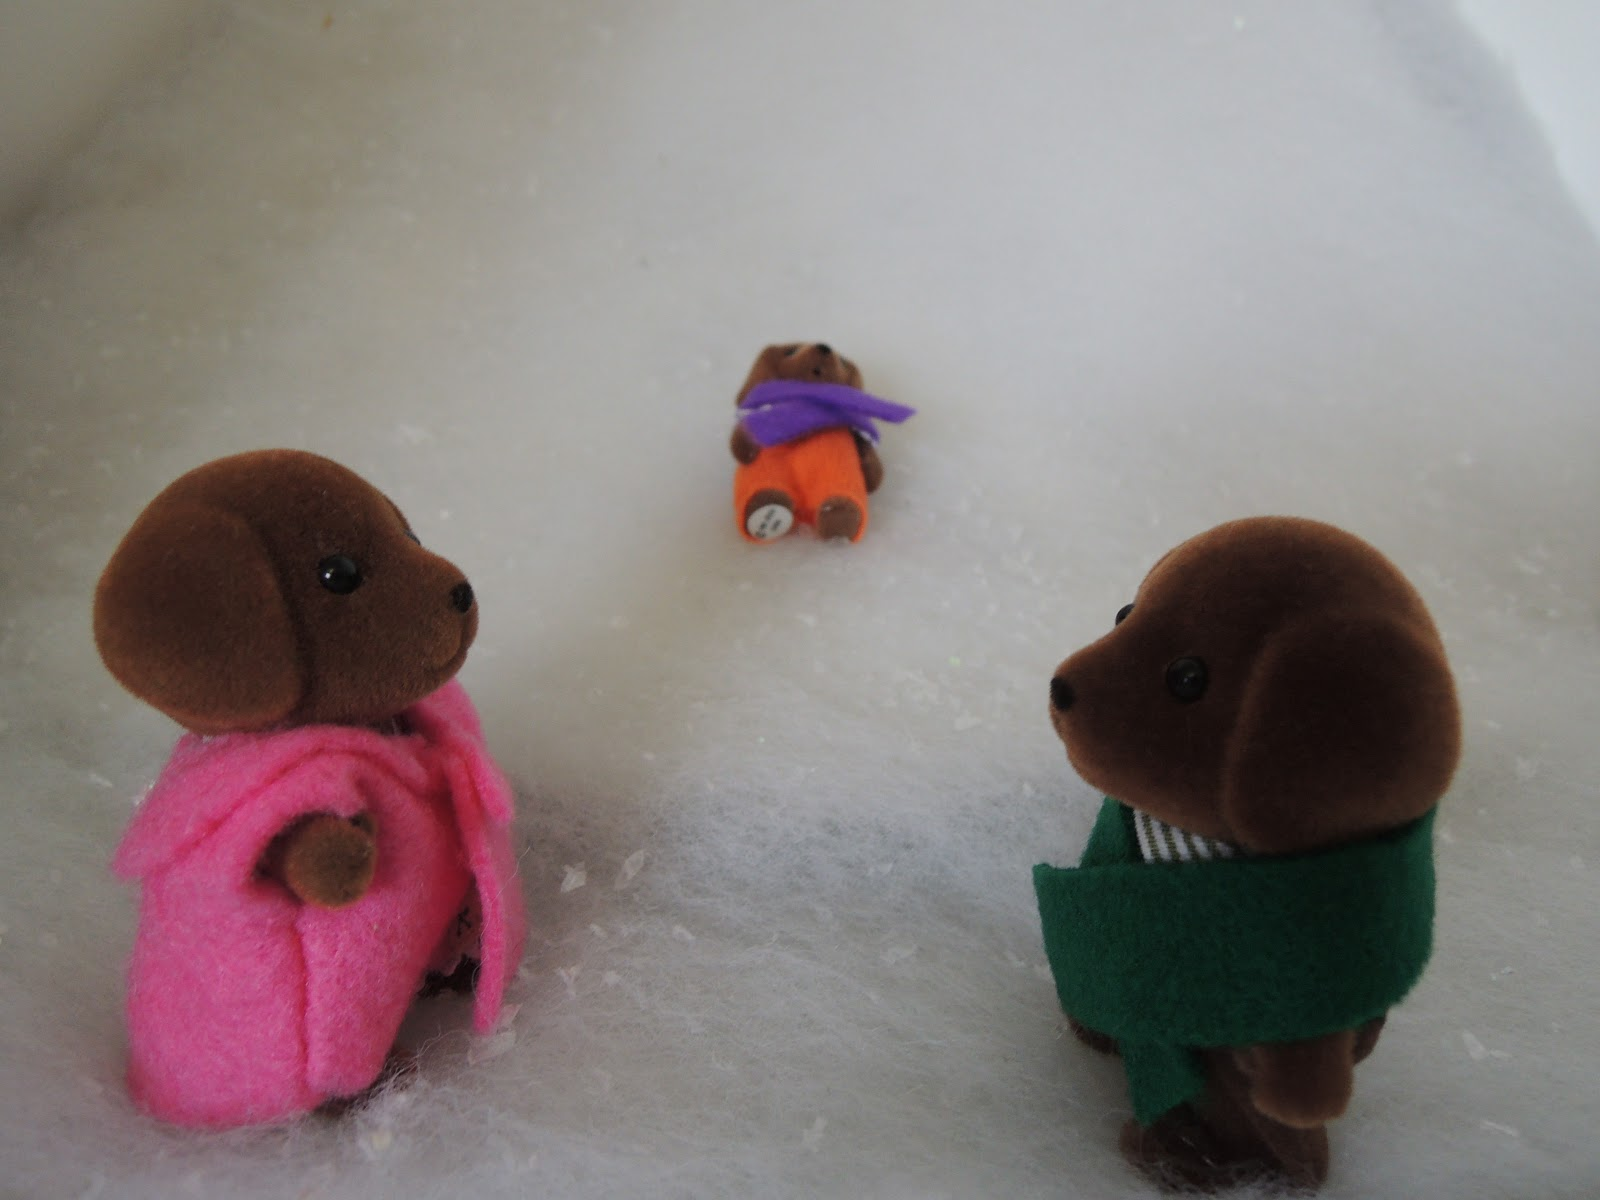 Marvelous Lilys Sylvanian Families Blog December  With Gorgeous Sylvanian Families Huntersmyth Chocolate Labradors Coats Snow Winter  Christmas With Enchanting Ruskington Garden Centre Also Melbicks Garden And Leisure In Addition Curry Garden And Olive Garden Sunday As Well As Gardening Gifts For Mom Additionally Rides In Busch Gardens From Lilyssylvanianfamiliesblogspotcom With   Gorgeous Lilys Sylvanian Families Blog December  With Enchanting Sylvanian Families Huntersmyth Chocolate Labradors Coats Snow Winter  Christmas And Marvelous Ruskington Garden Centre Also Melbicks Garden And Leisure In Addition Curry Garden From Lilyssylvanianfamiliesblogspotcom